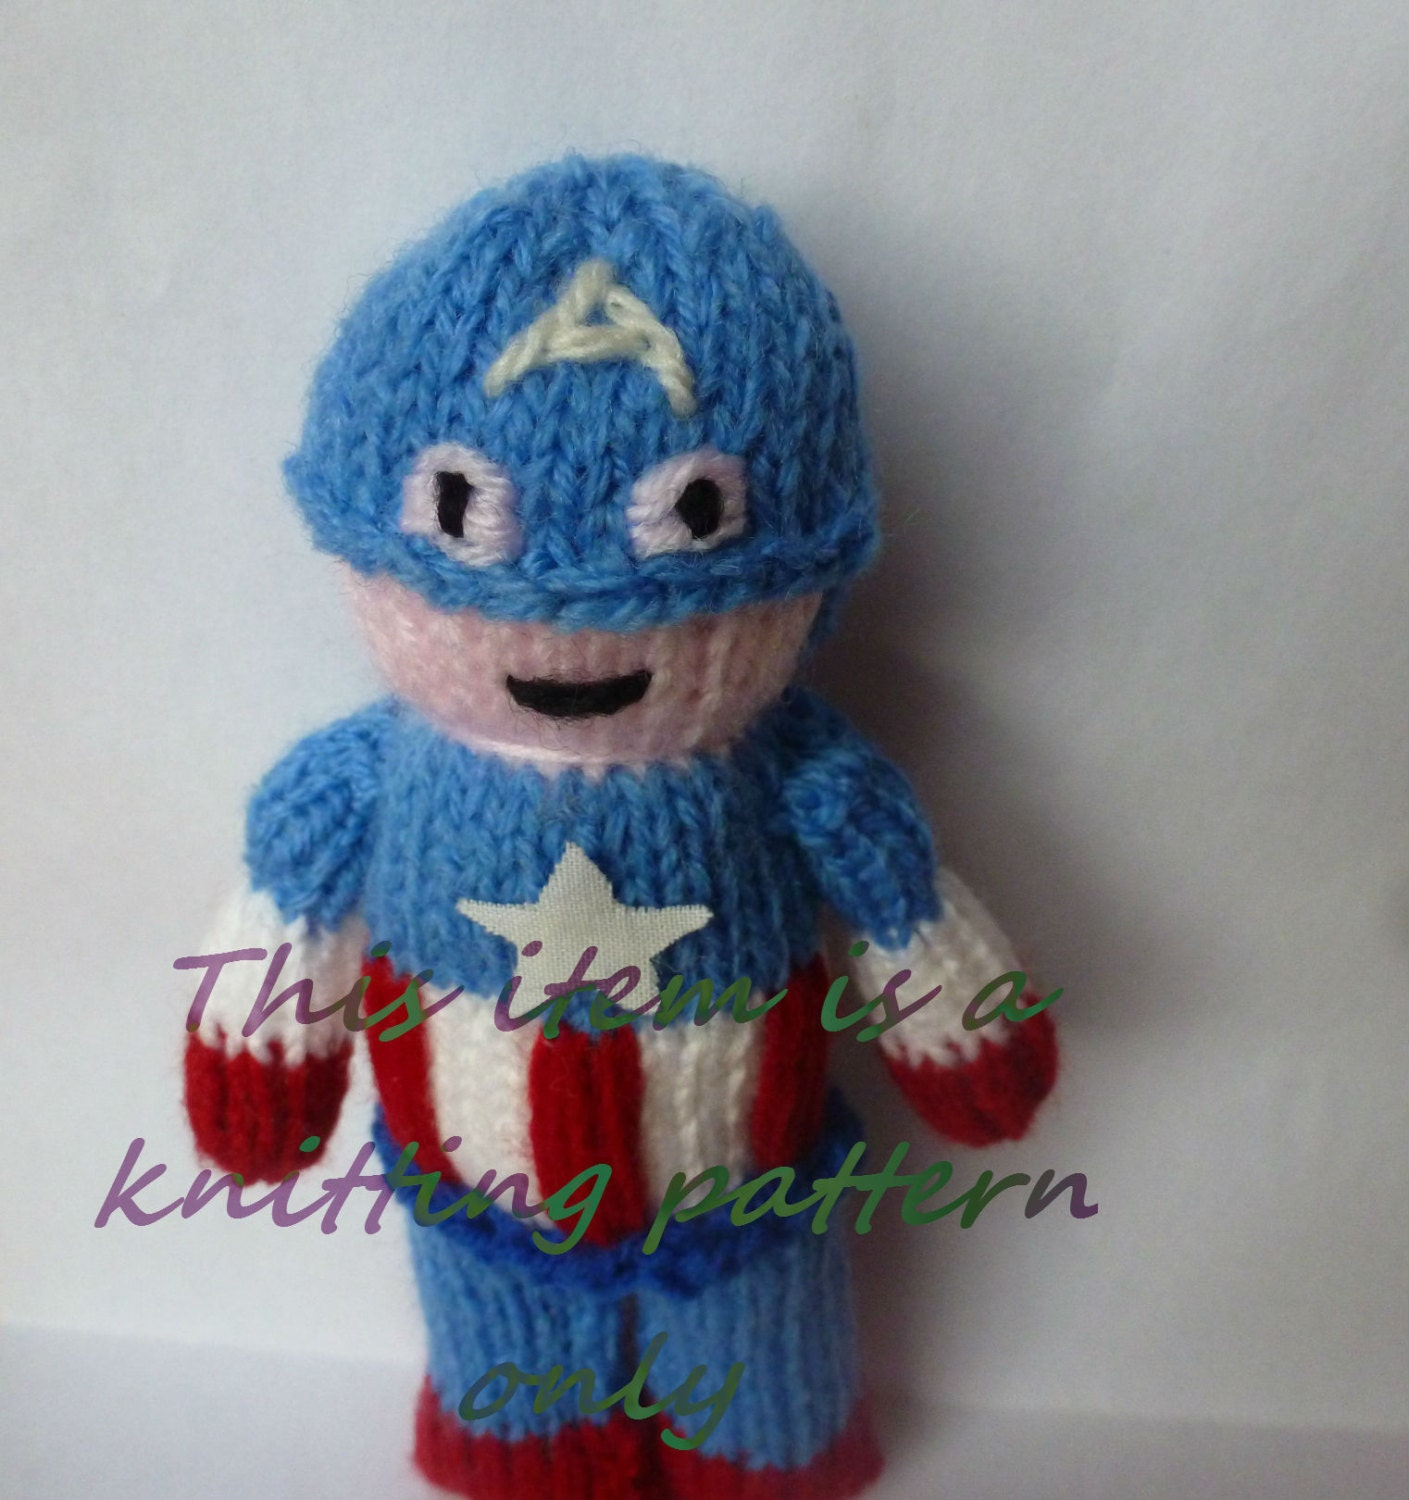 Captain America Knitting Pattern : PDF knitting pattern: Captain America